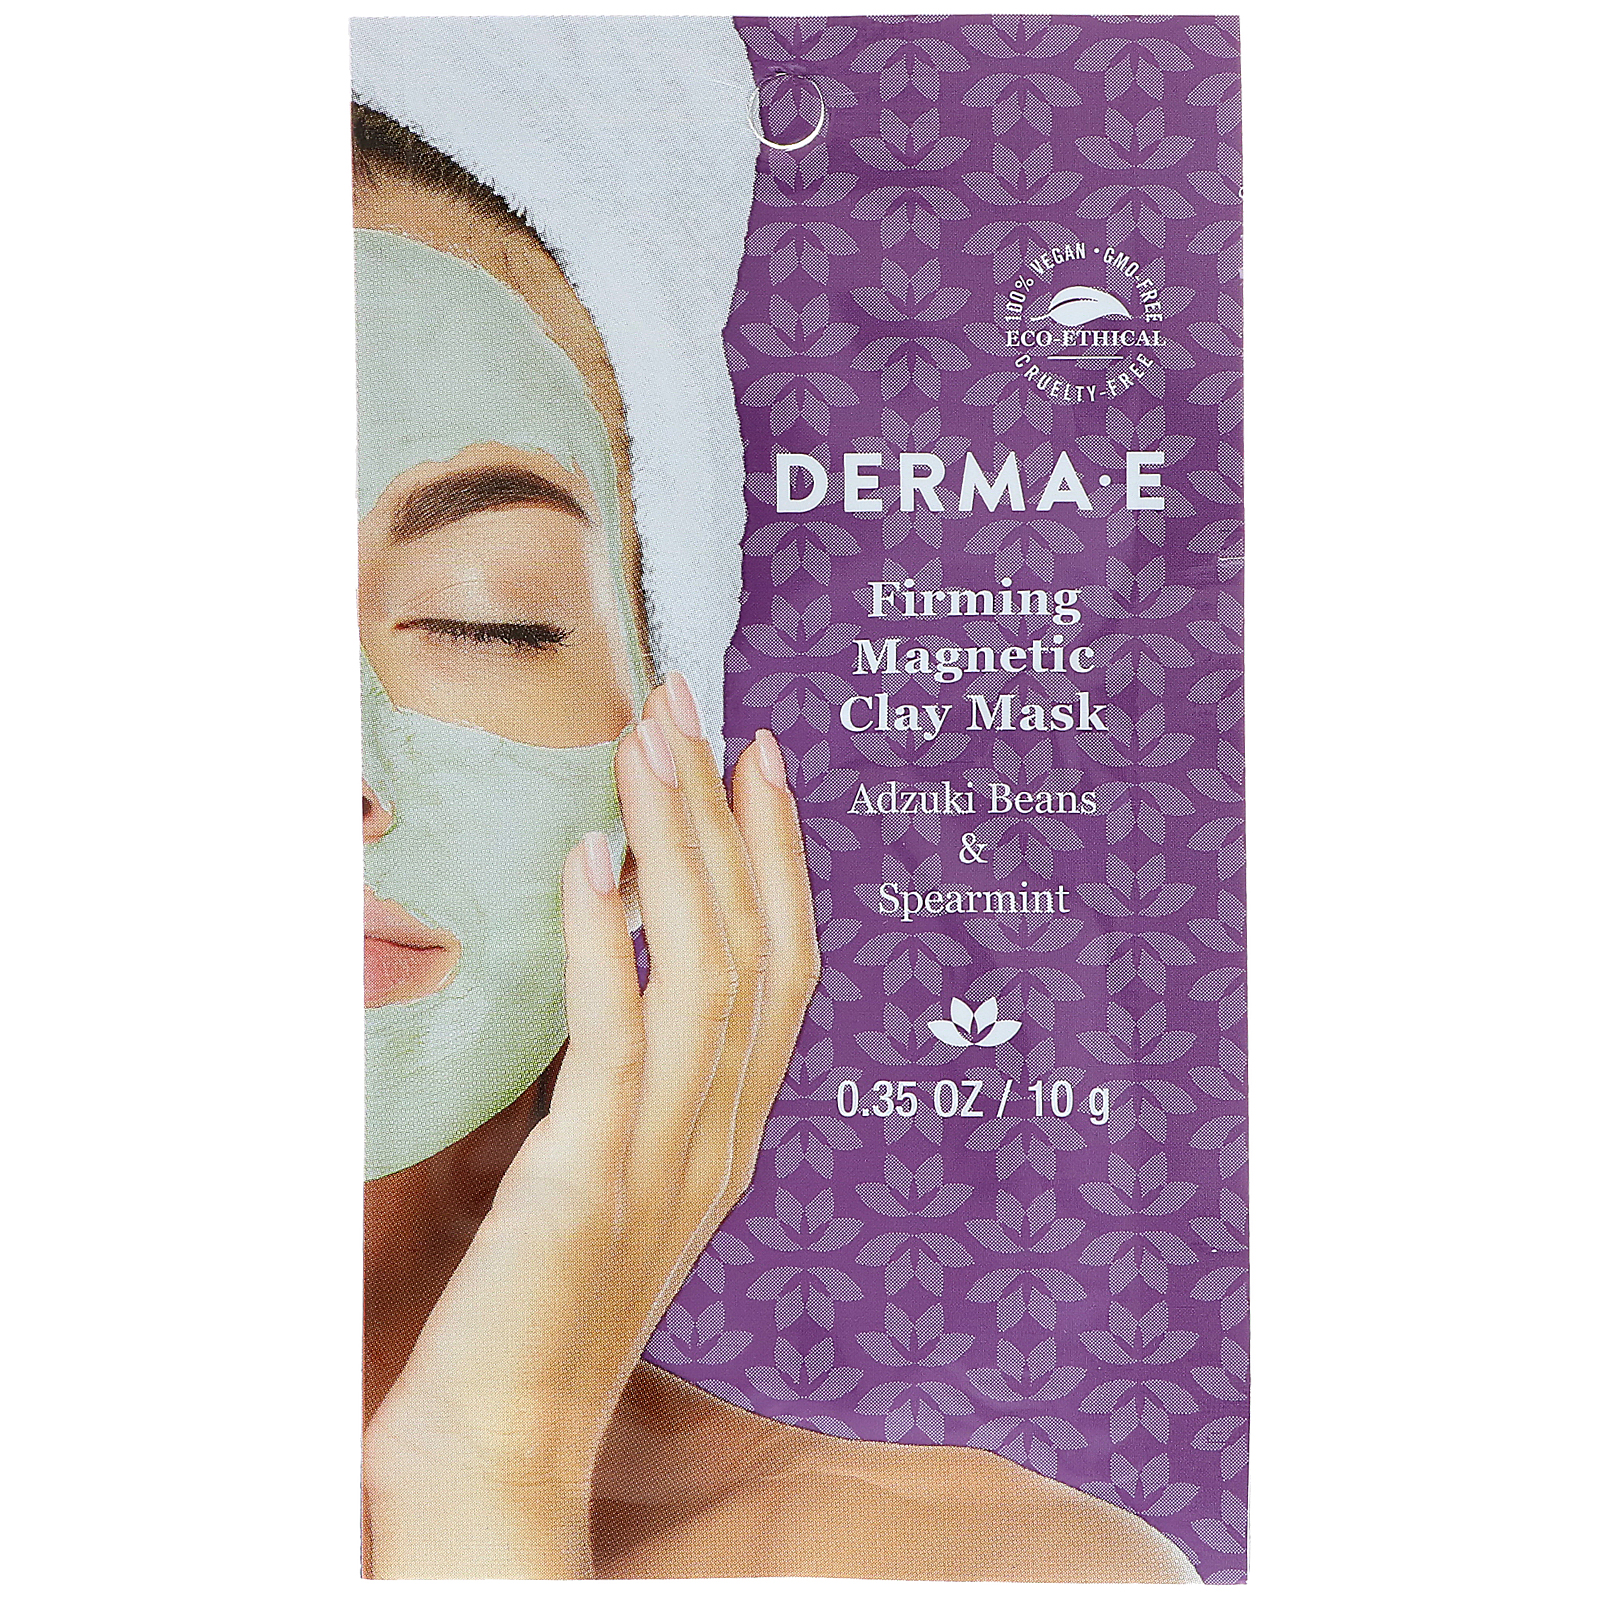 Vitamin C Brightening Clay Facial Mask Turmeric & Kale - 0.35 oz. by DERMA-E (pack of 2) Nu-Pore, Hydrating Makeup Remover, Coconut Essence, 20 Wipes(pack of 1)